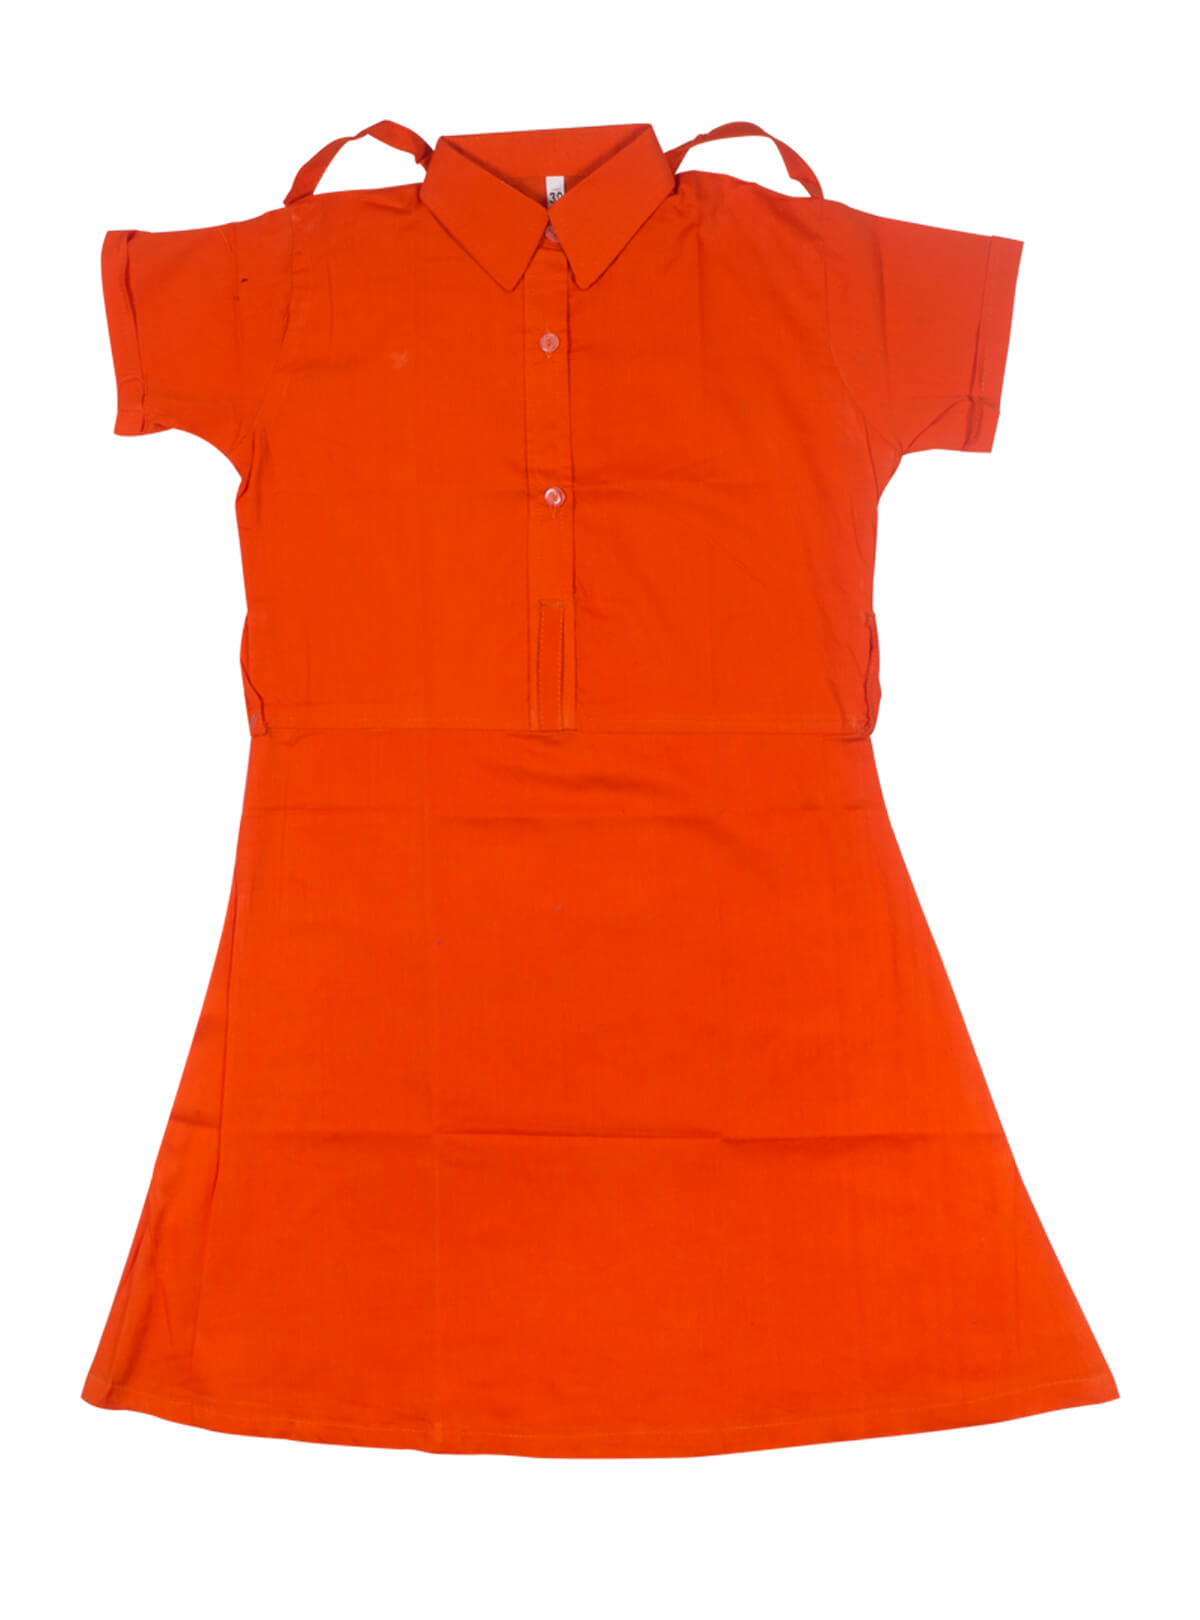 Orange Green Girls School Dress Frock